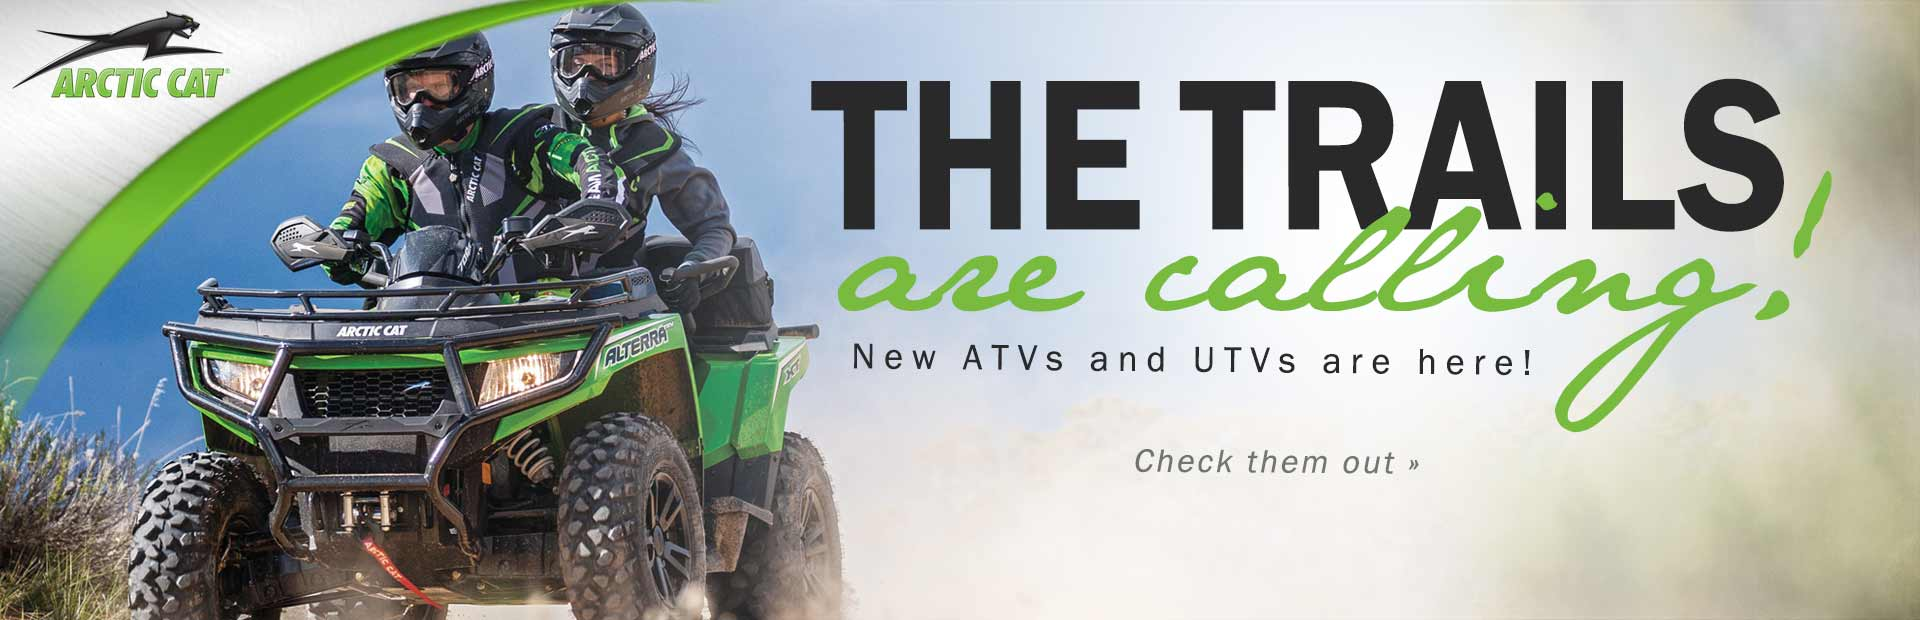 The trails are calling! Click here to check out new Arctic Cat ATVs and UTVs.